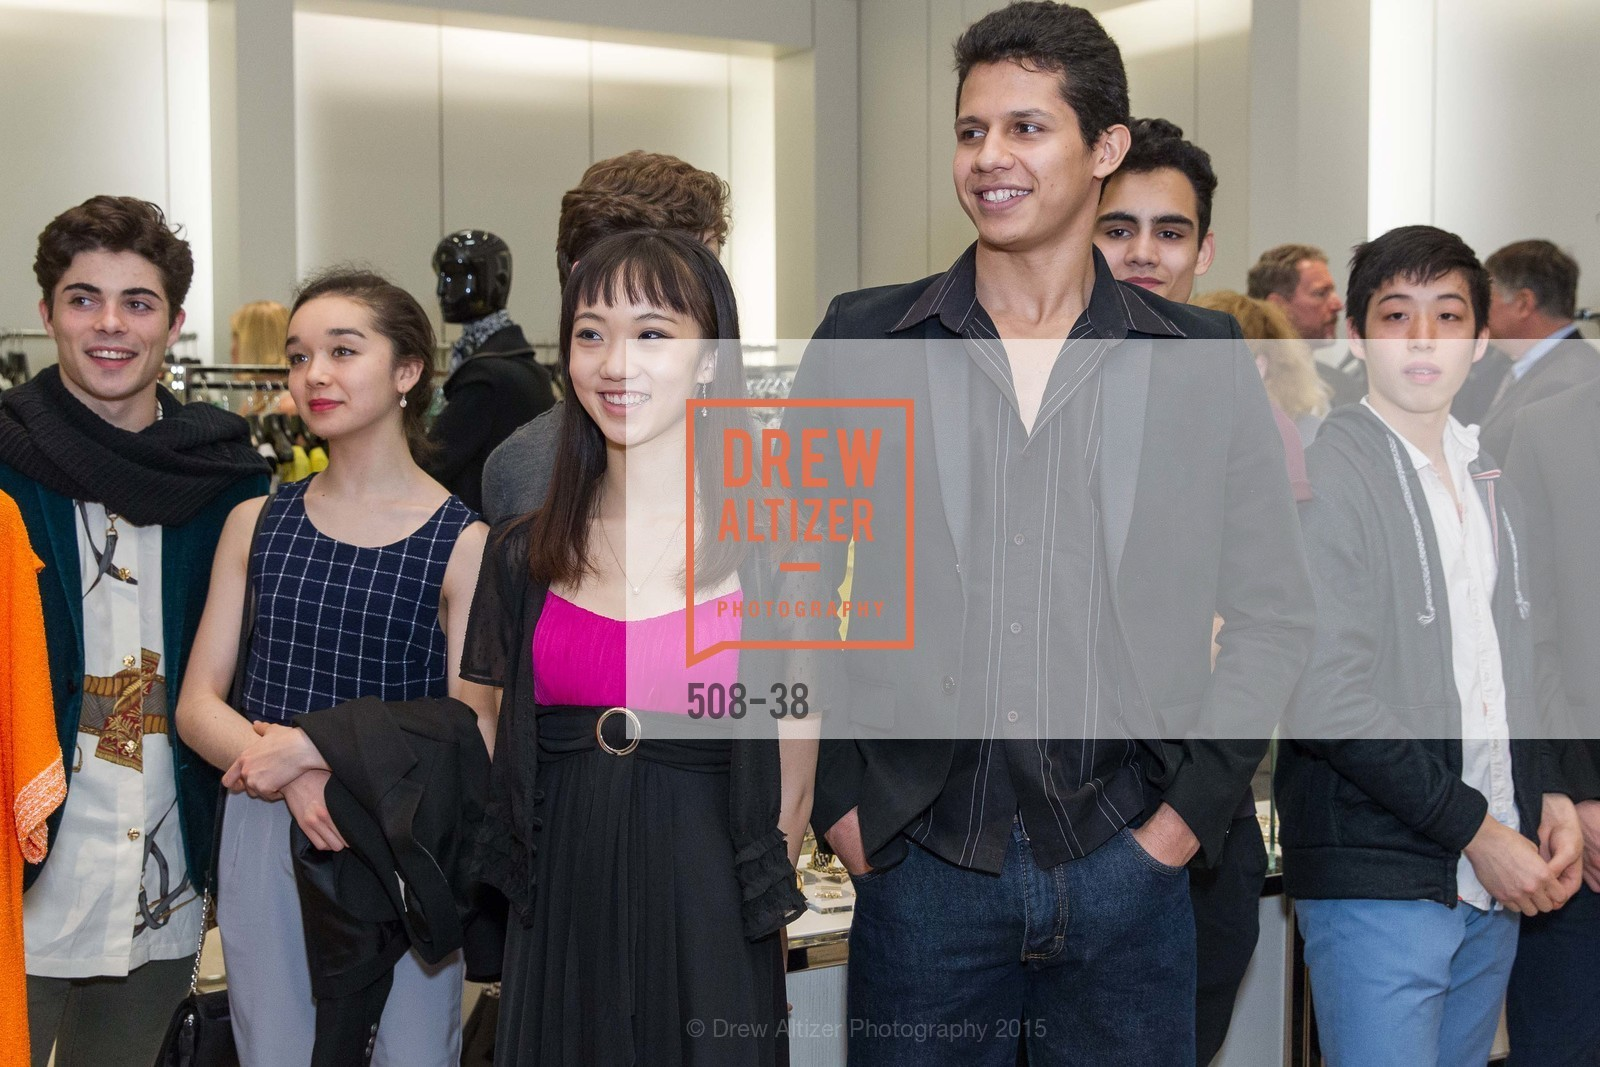 Daniel Domench, Natasha Sheehan, Chisako Oga, Adriel Diniz, Haruo Niniya, SF BALLET at St. John Boutique, Four Seasons Hotel. 767A Market Street, Suite B, April 15th, 2015,Drew Altizer, Drew Altizer Photography, full-service agency, private events, San Francisco photographer, photographer california